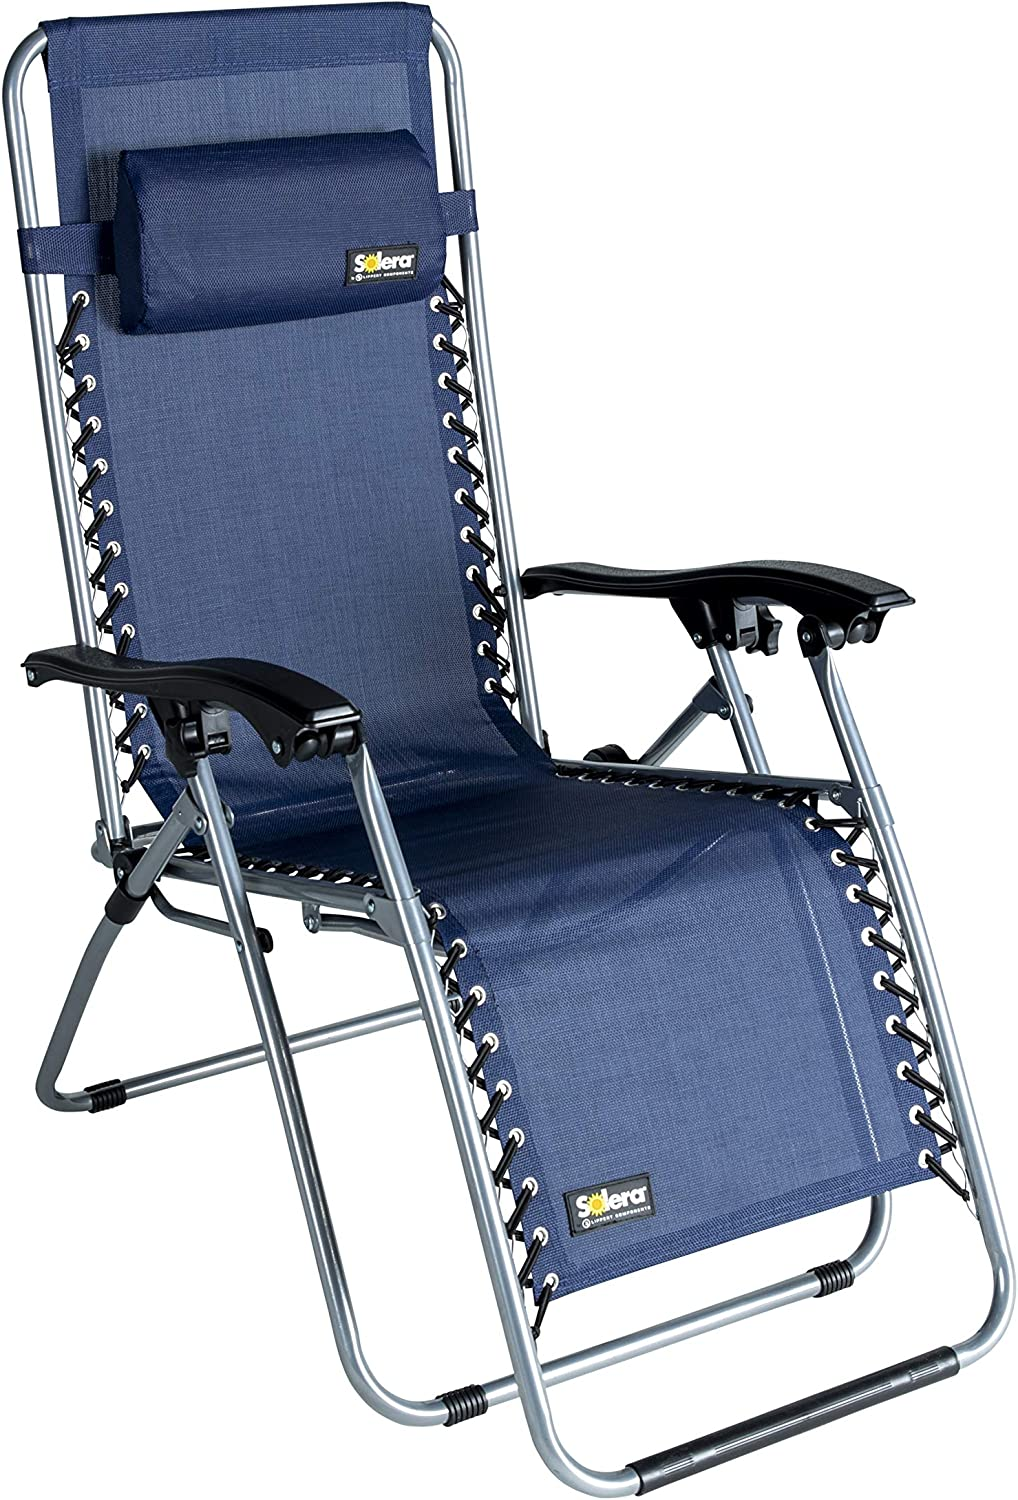 Large special price !! Solera Zero Gravity Lounge latest - Navy Chair